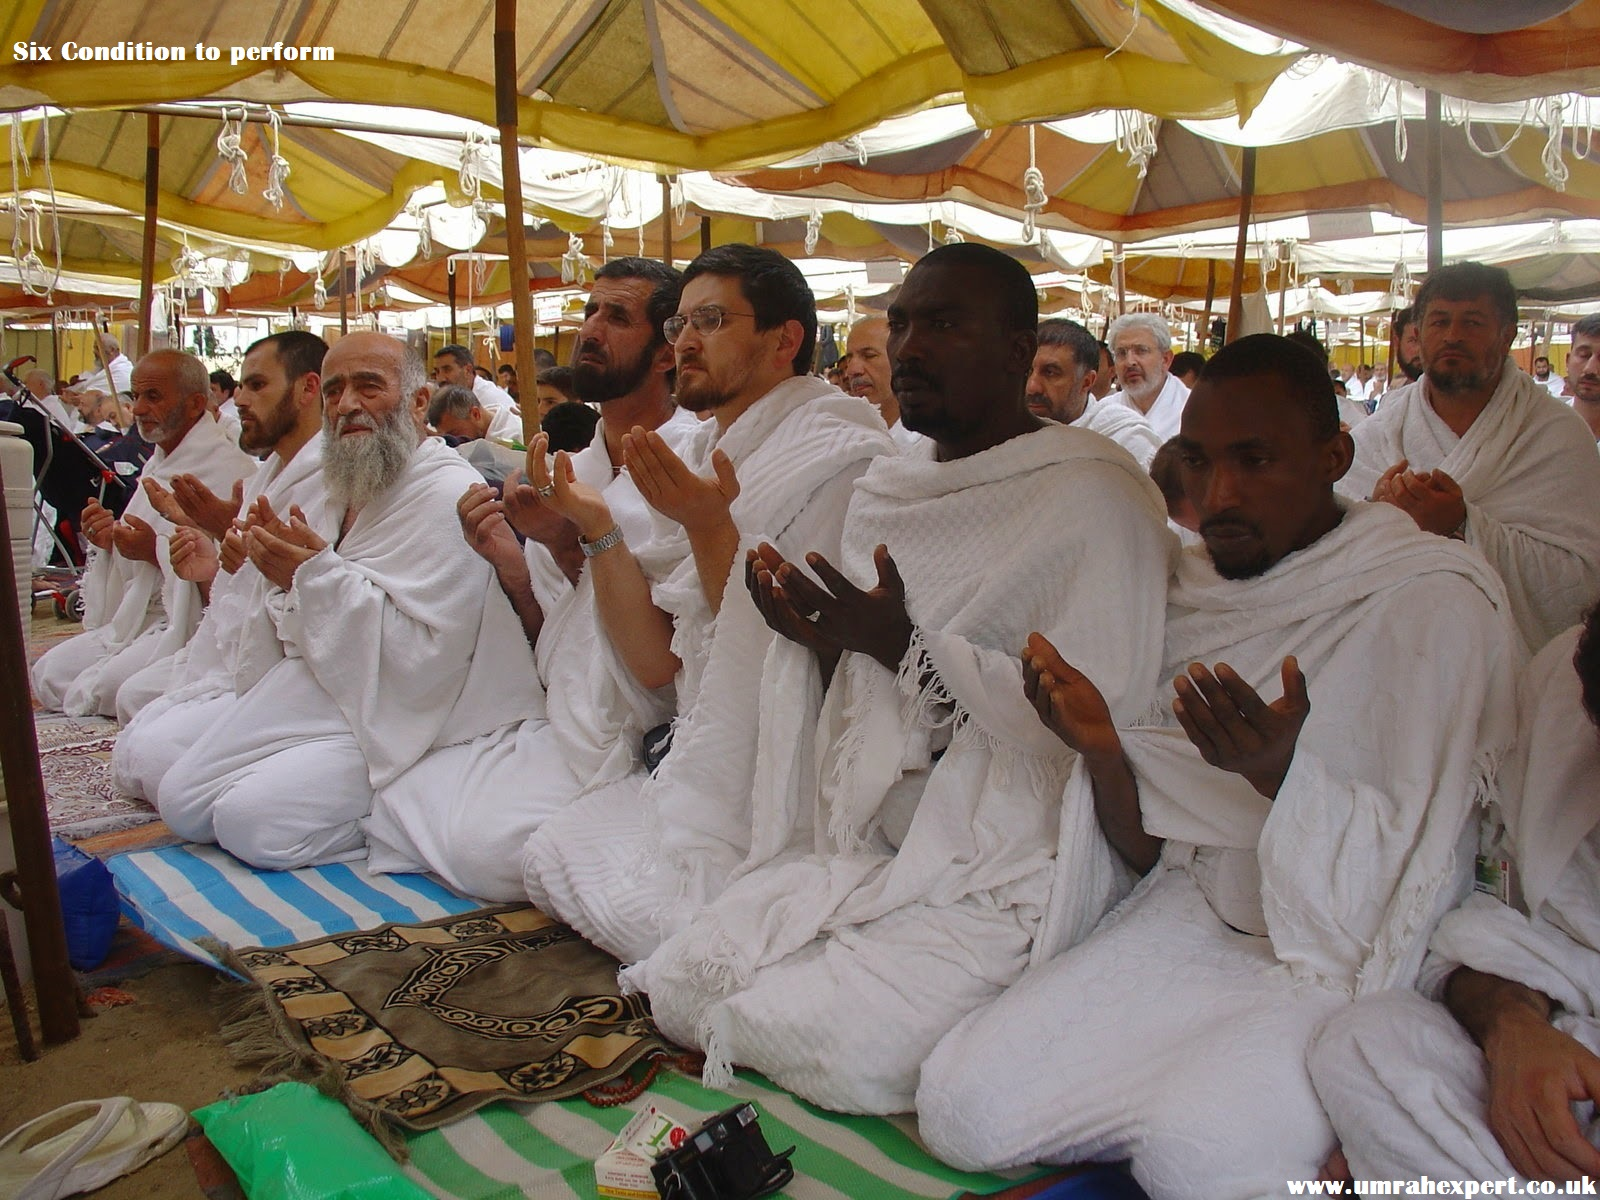 Six Condition to perform Hajj